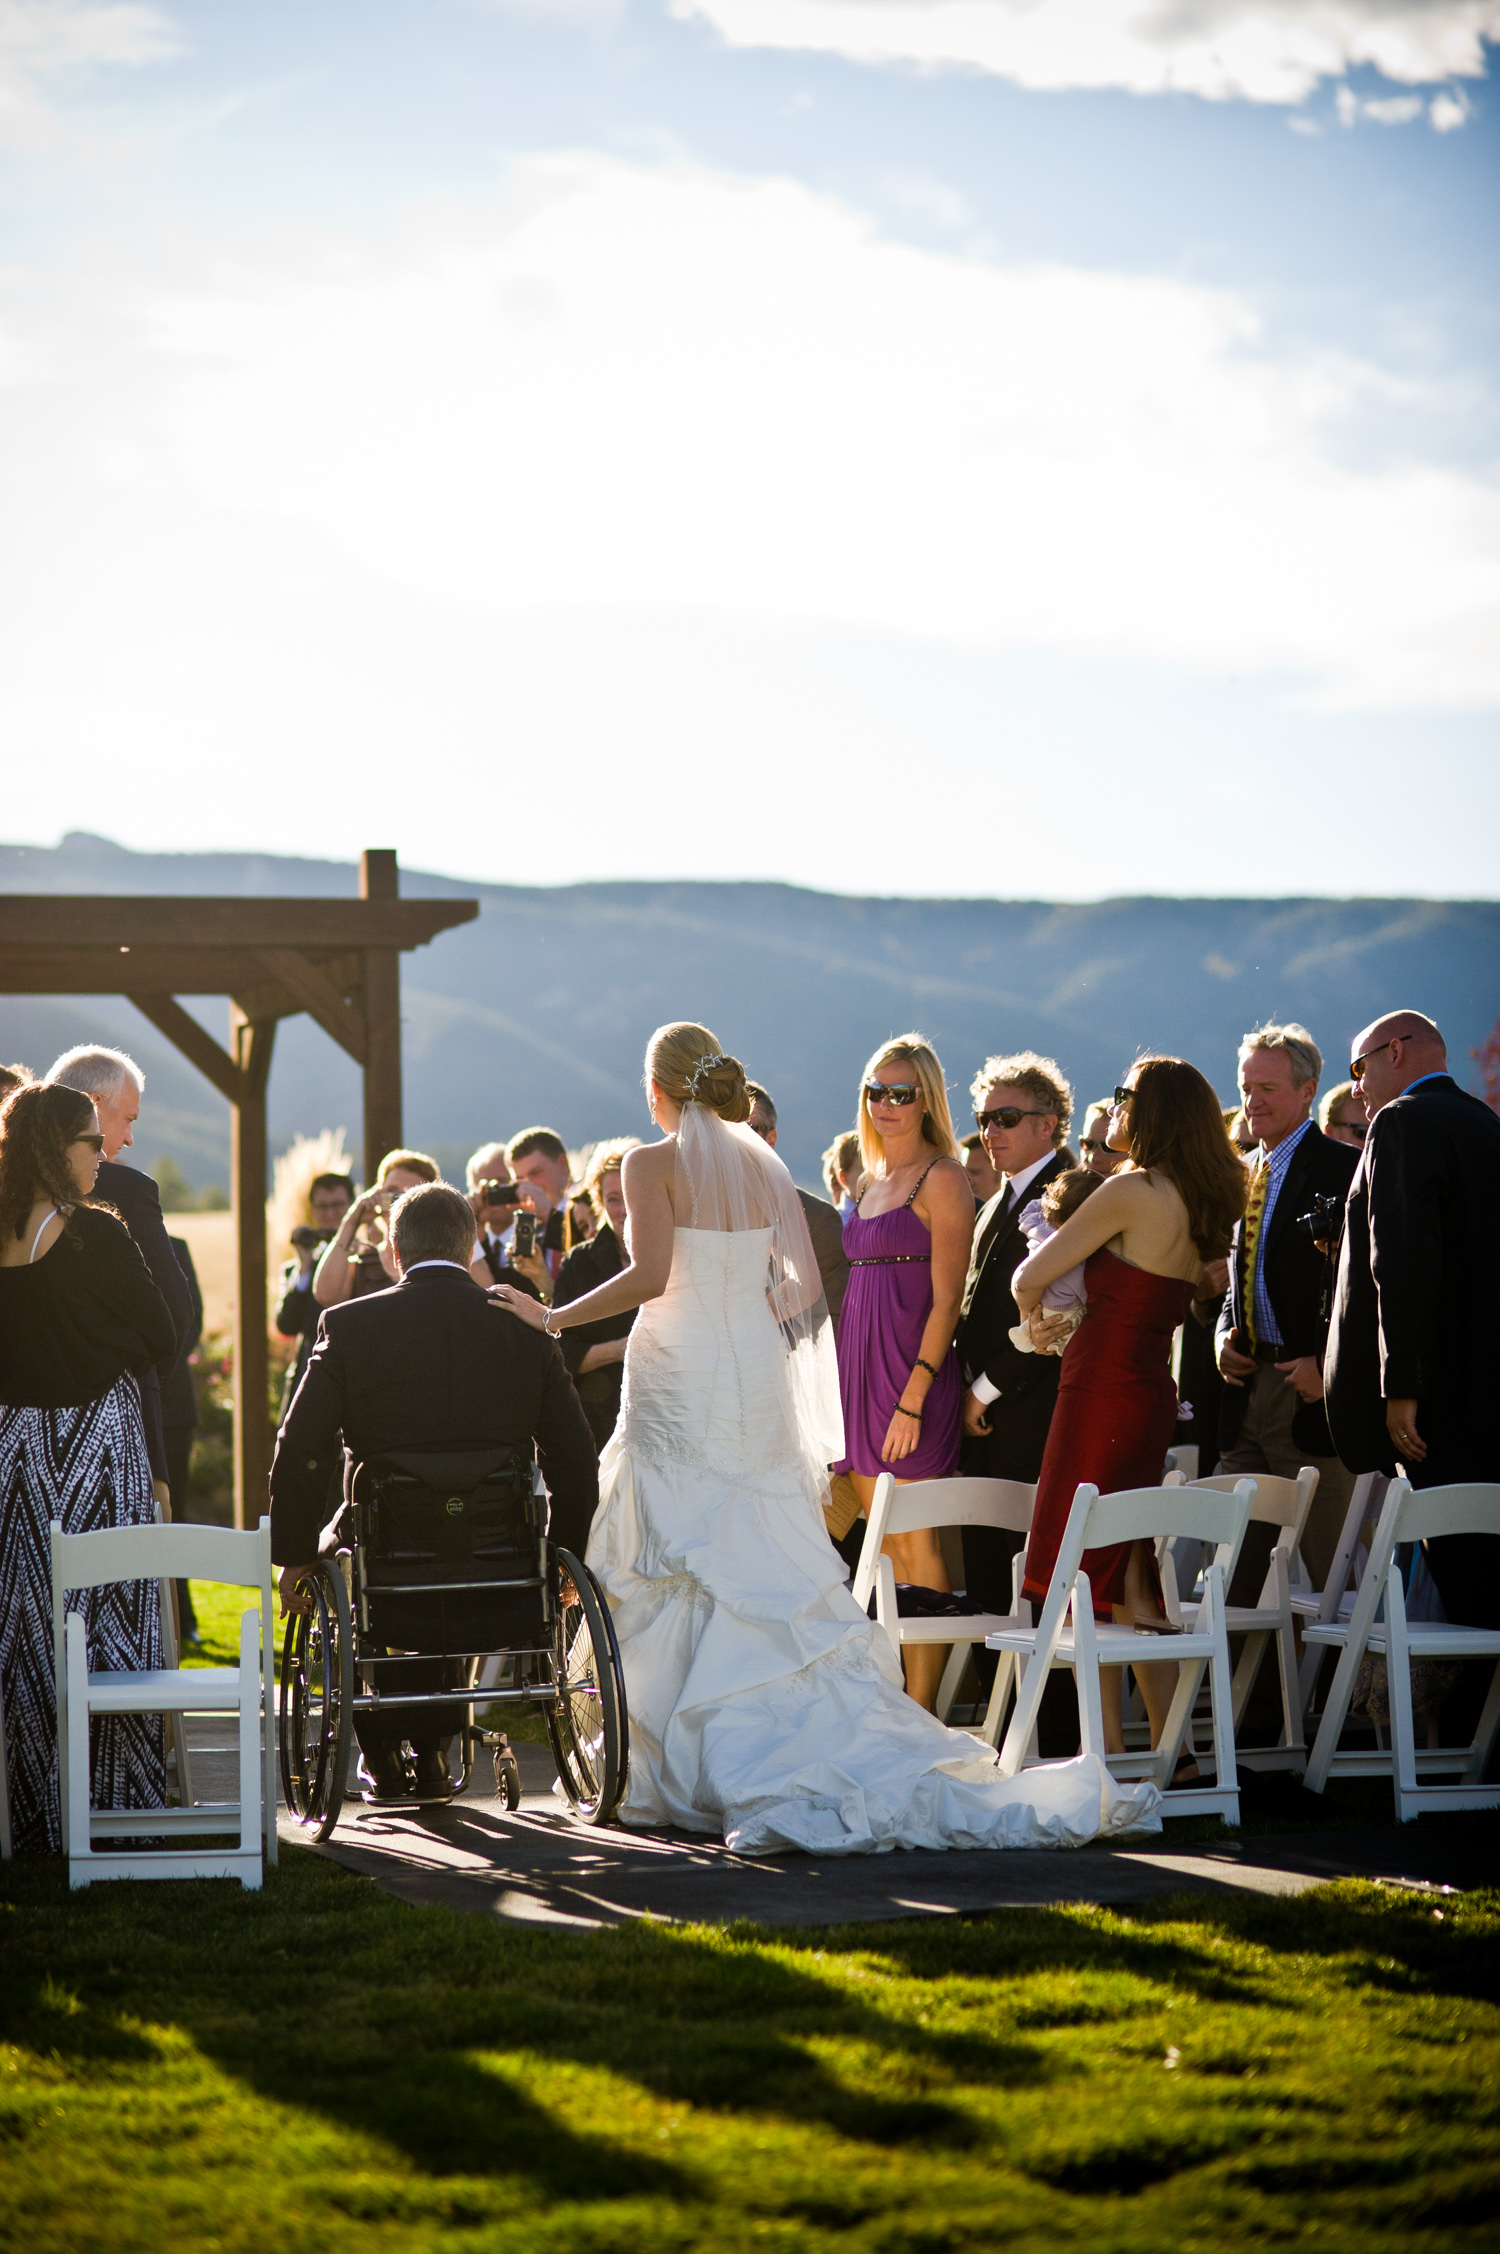 Crooked_Willow_Farms__Sedalia_Wedding_021.JPG